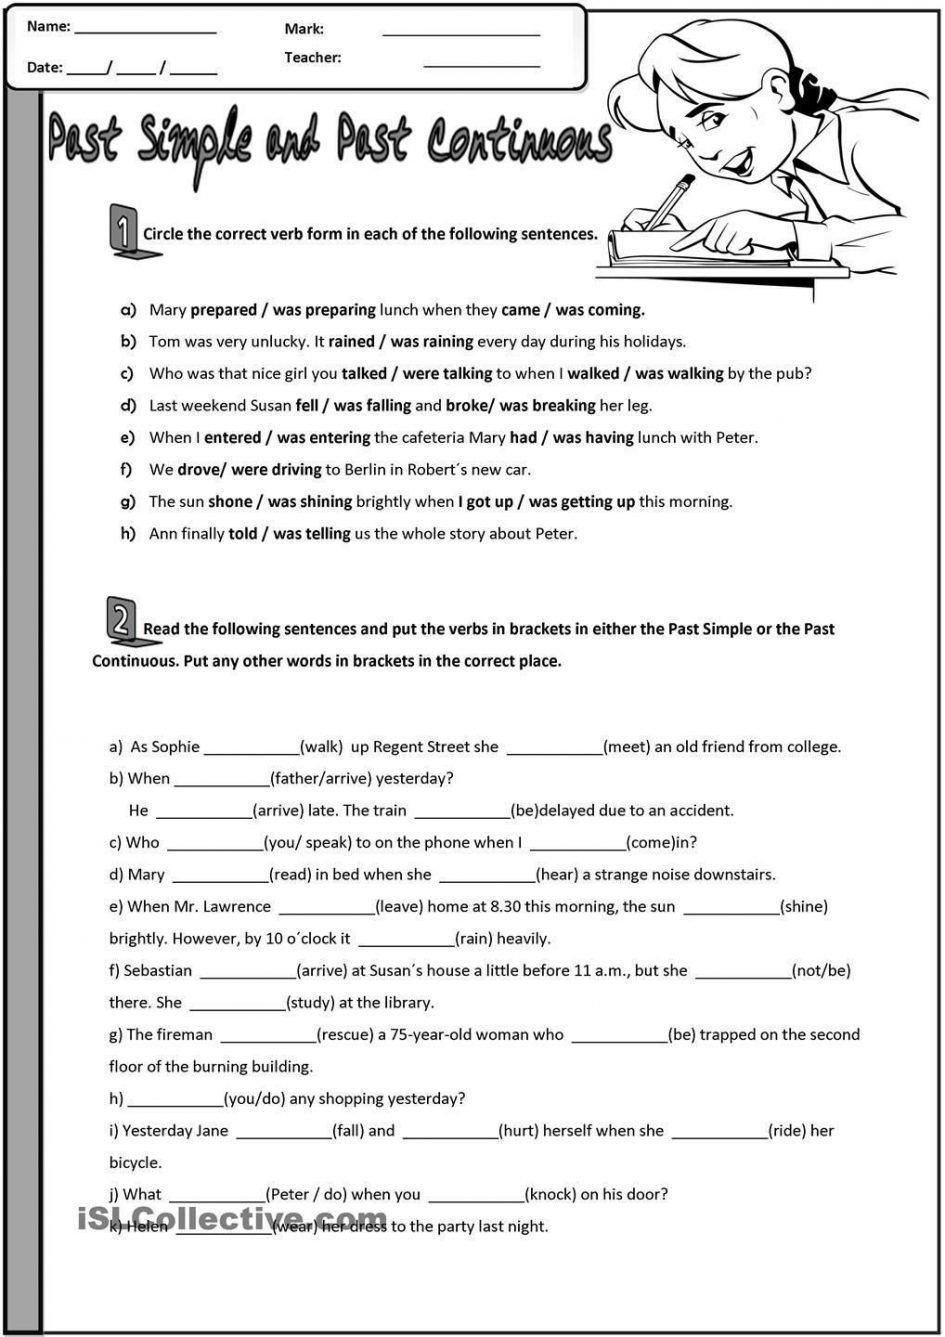 Grammar Worksheets for Middle School Excel Fun Grammar Worksheets for High School Kids